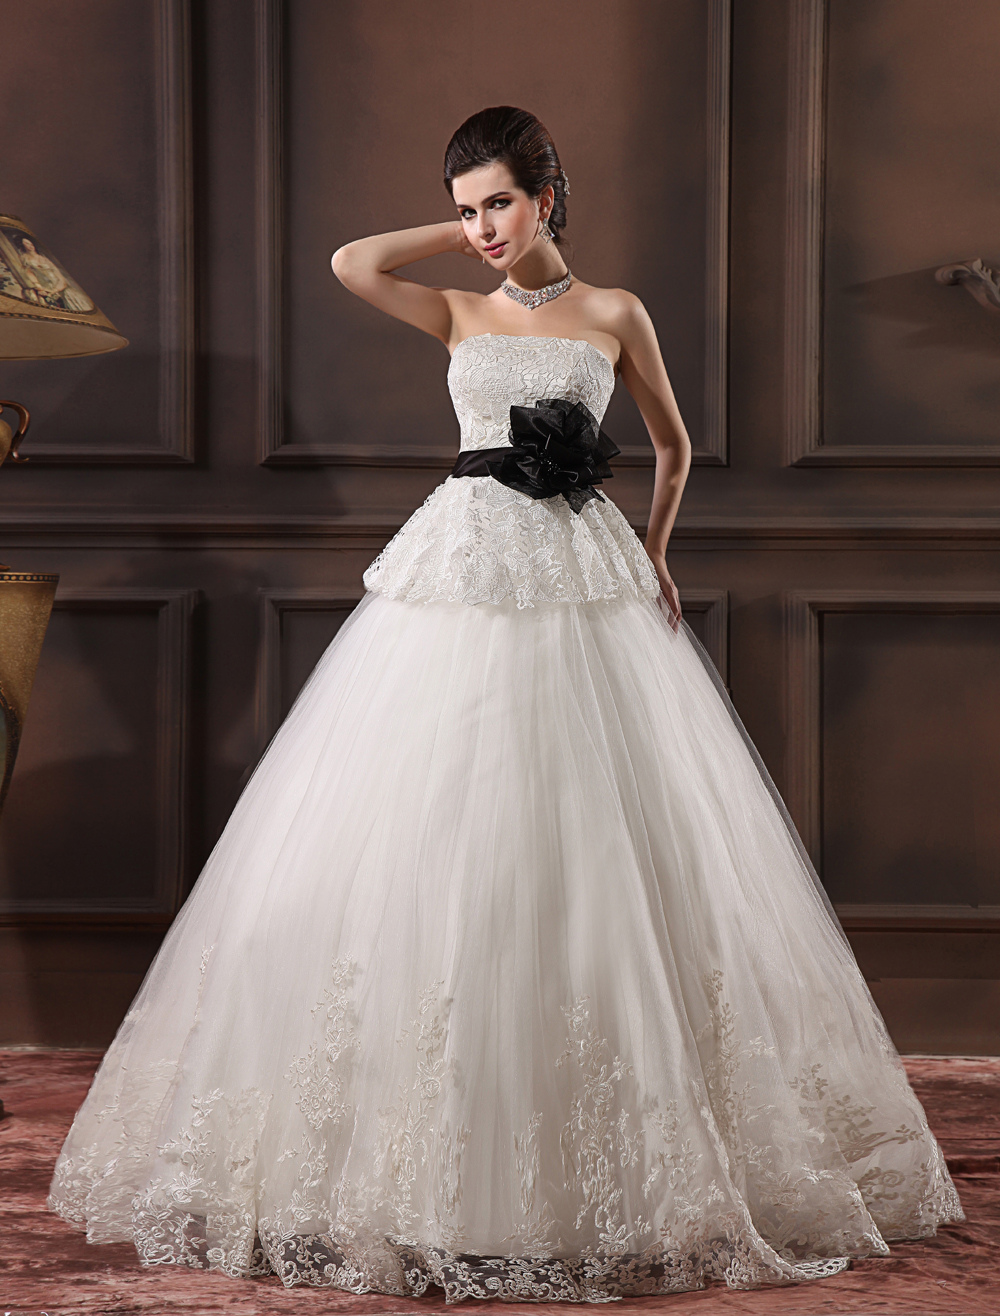 White Strapless Applique Lace Bridal Wedding Gown